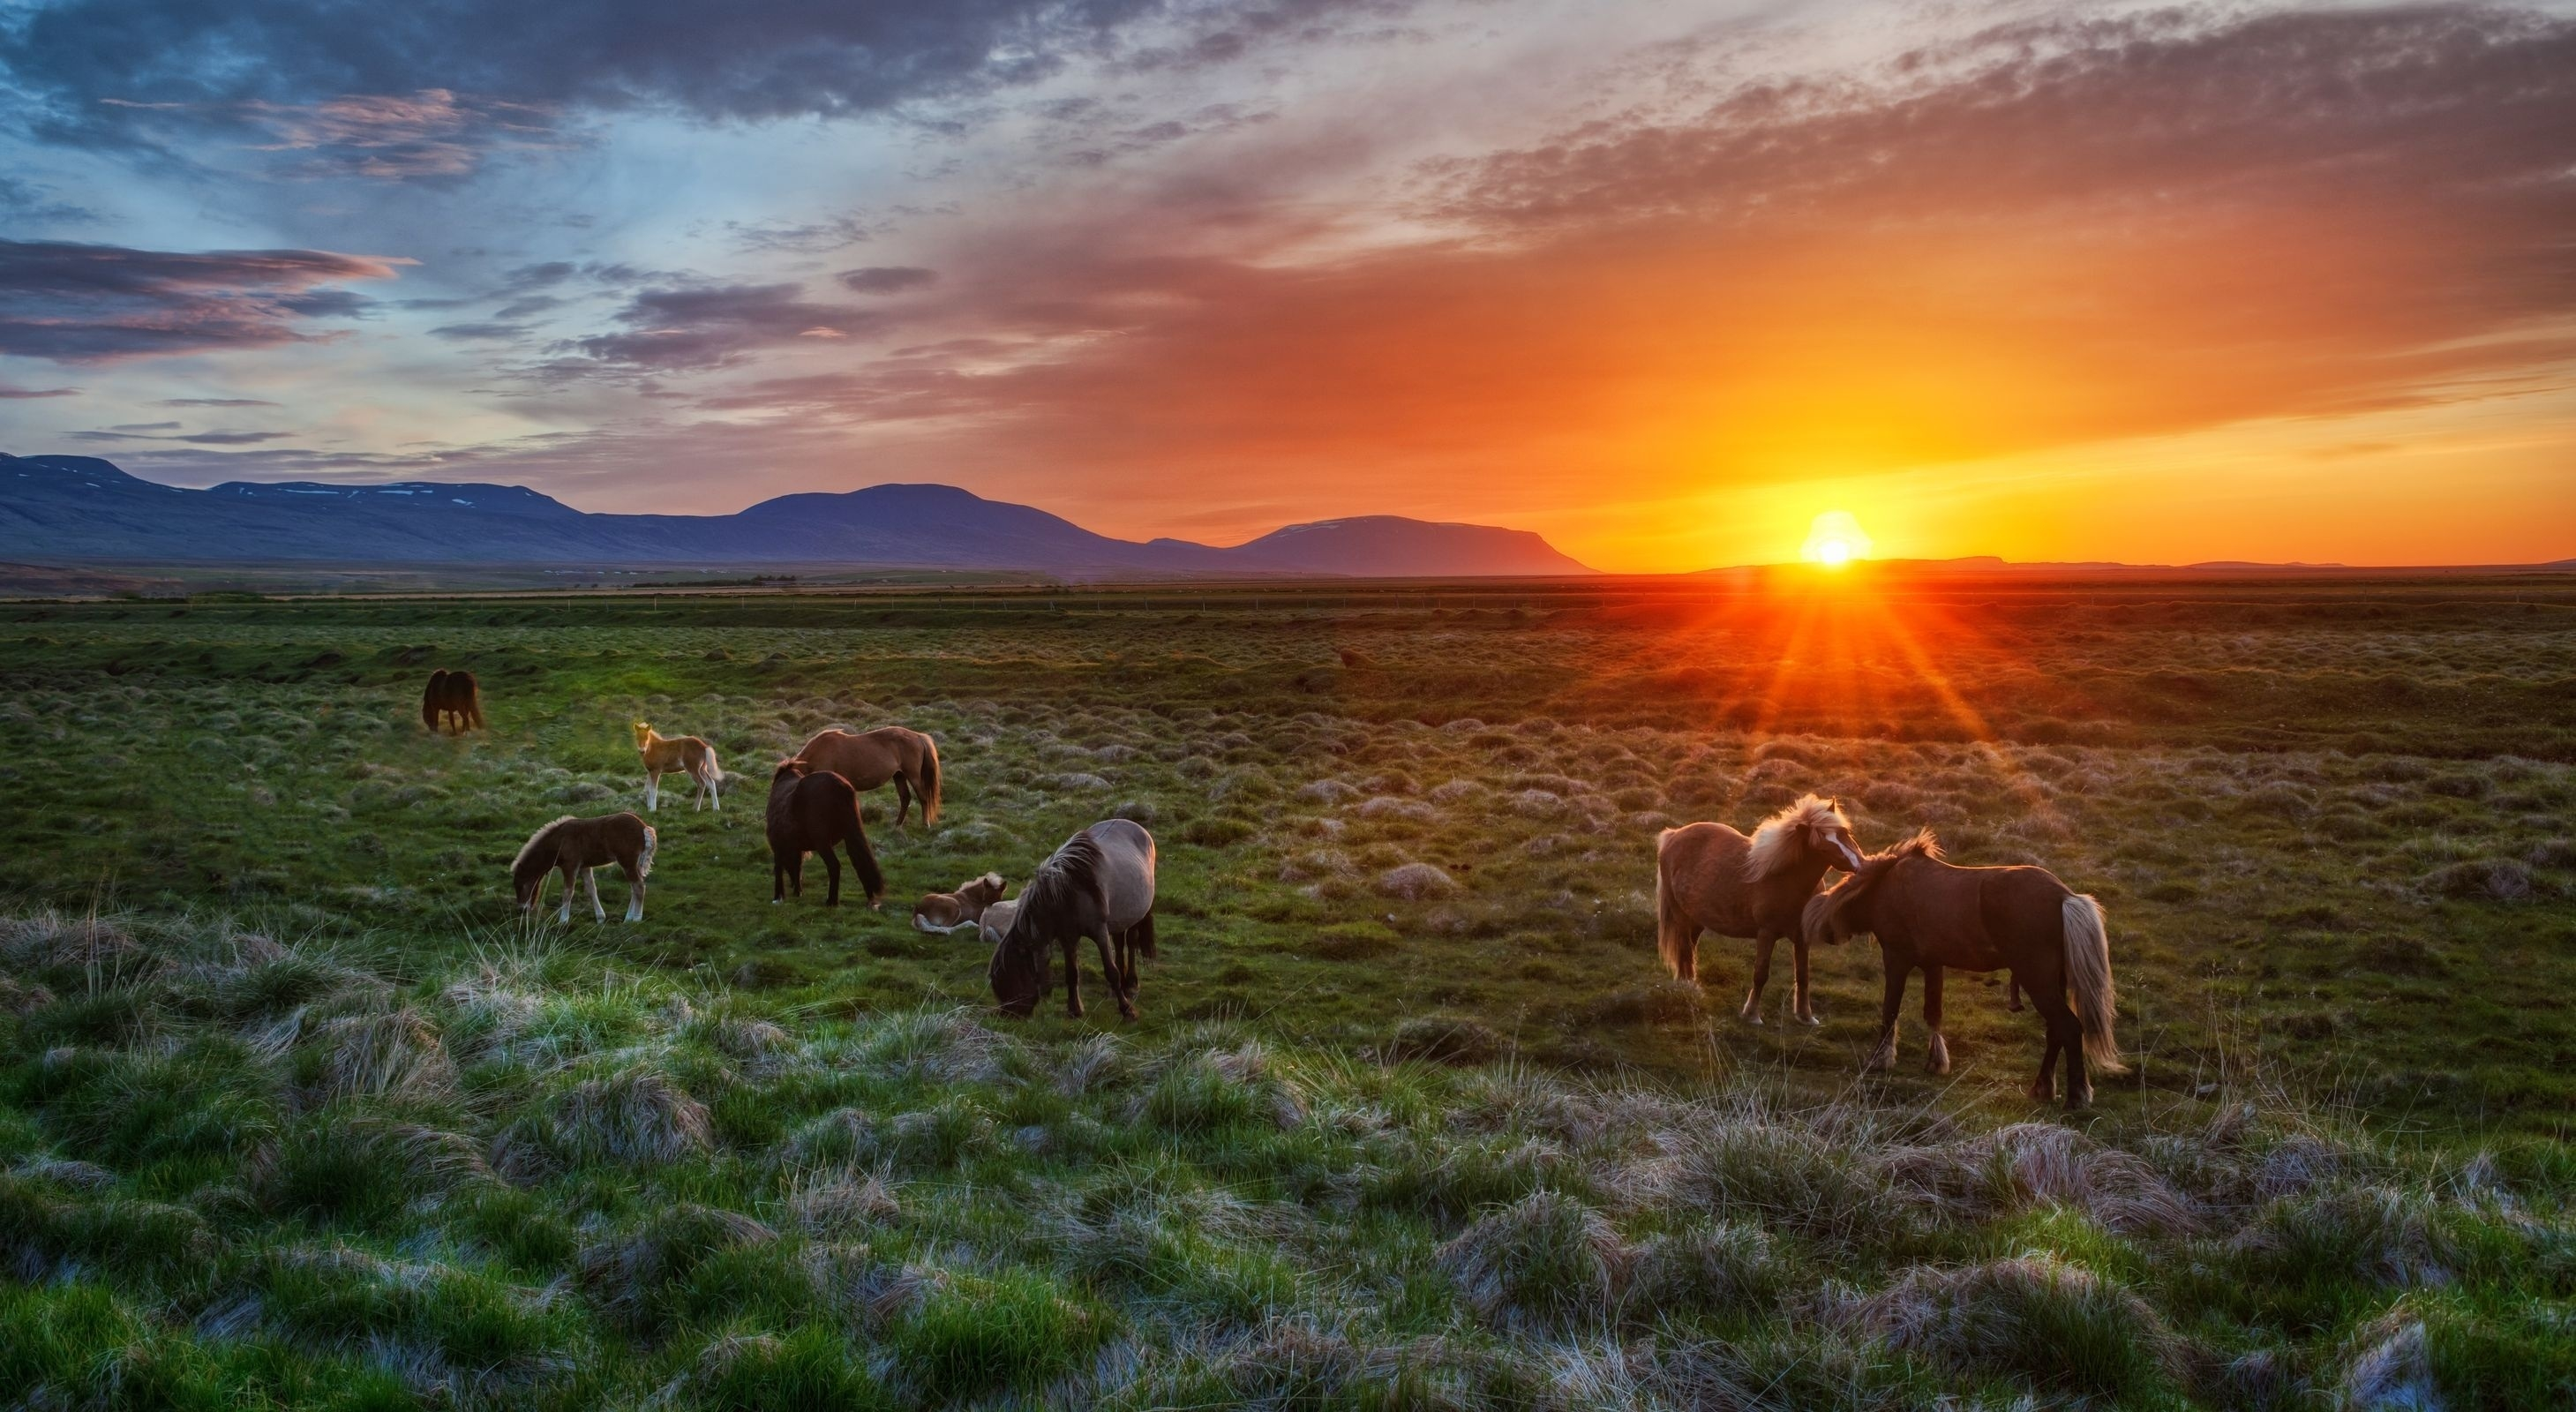 133871 download wallpaper Animals, Iceland, Sunset, Foals, Colts, Horses, Landscape screensavers and pictures for free